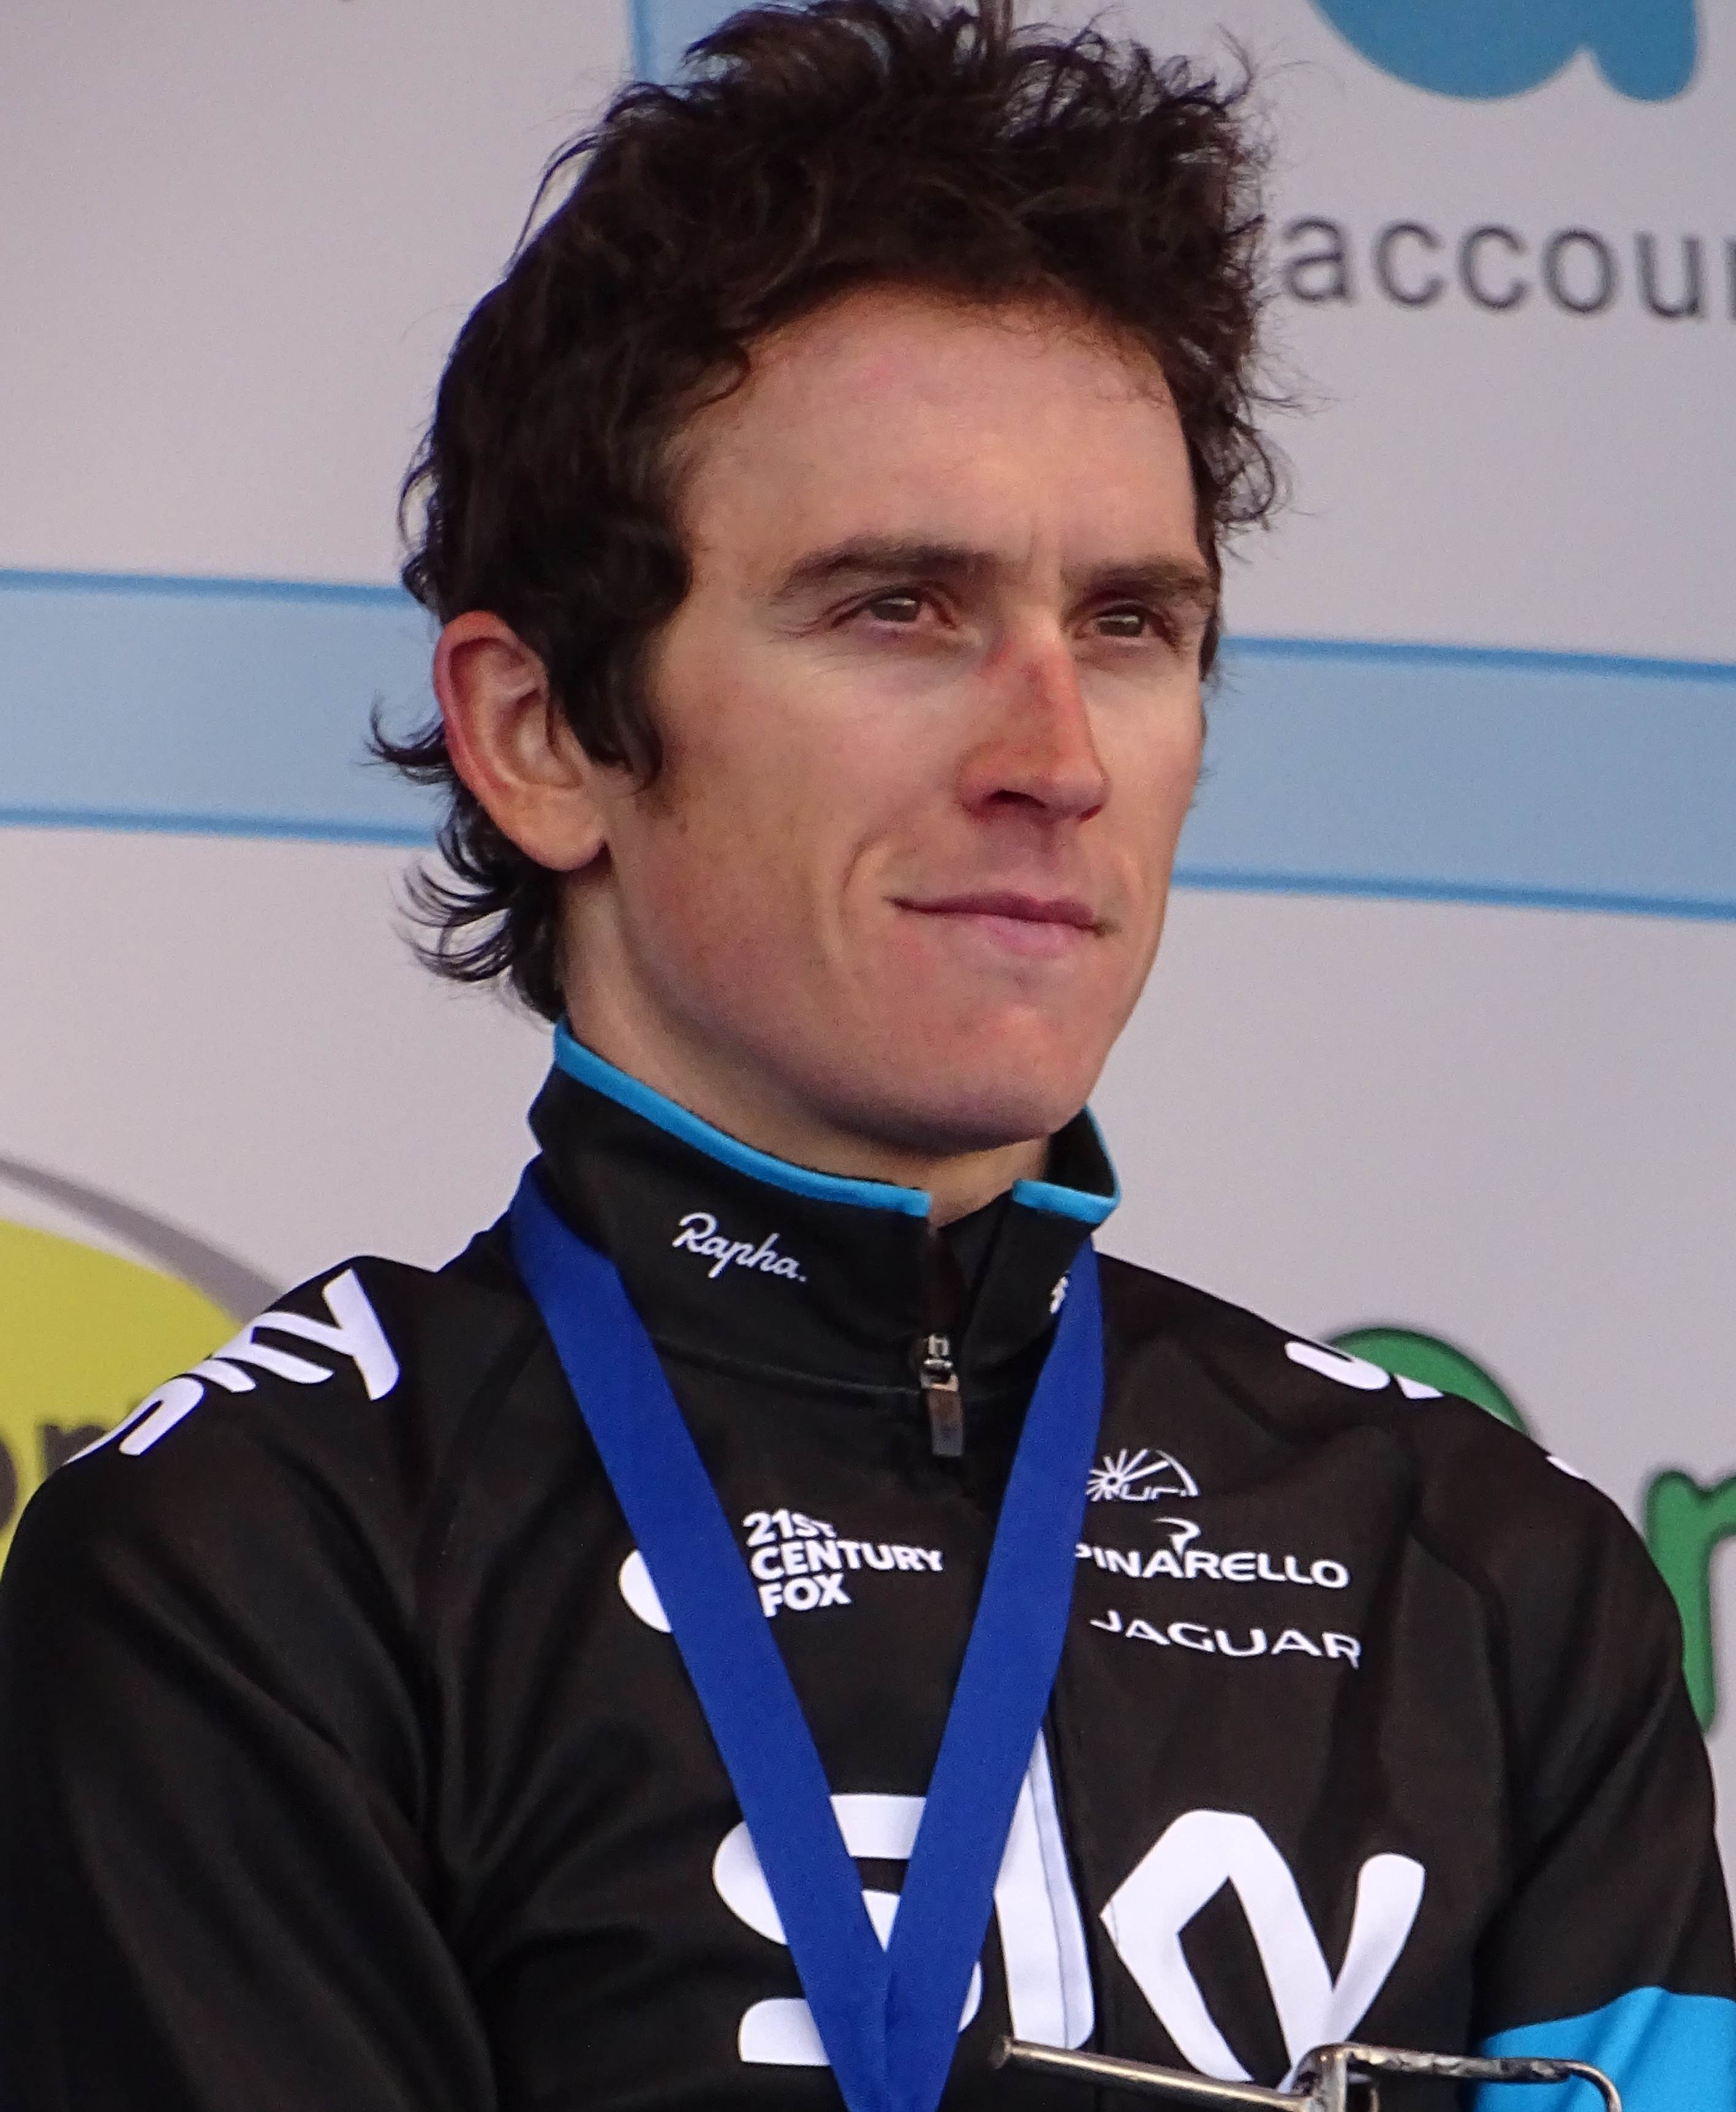 The 32-year old son of father (?) and mother(?) Geraint Thomas in 2018 photo. Geraint Thomas earned a  million dollar salary - leaving the net worth at 0.2 million in 2018